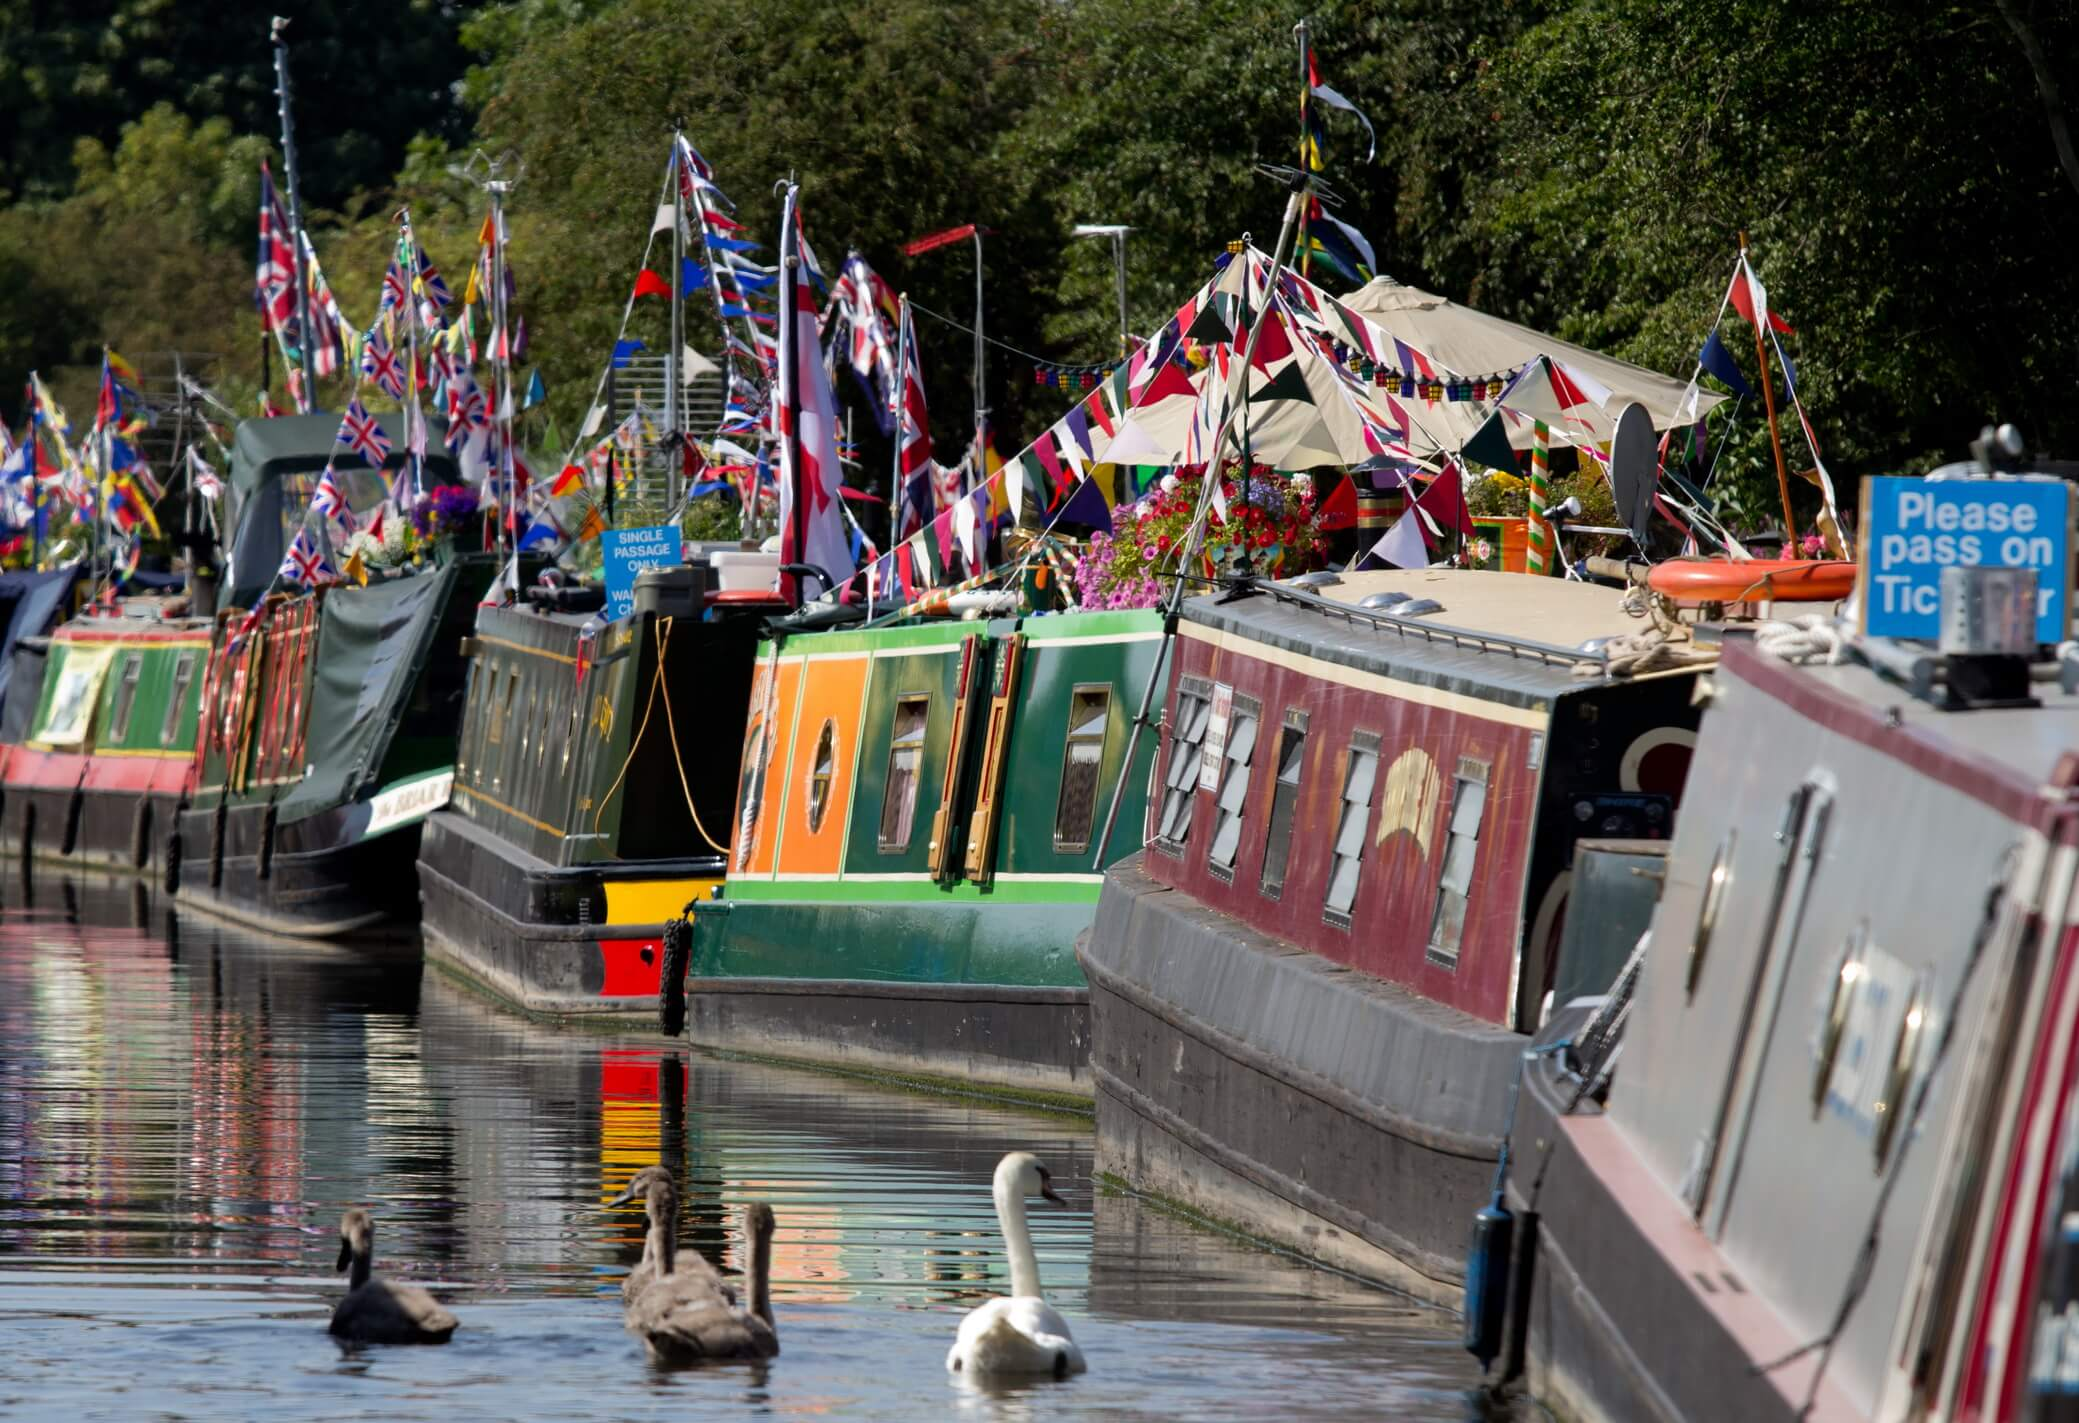 Swans swimming on the canal alongside the flag festooned canal boats at The Waterways Festival in Burton on Trent